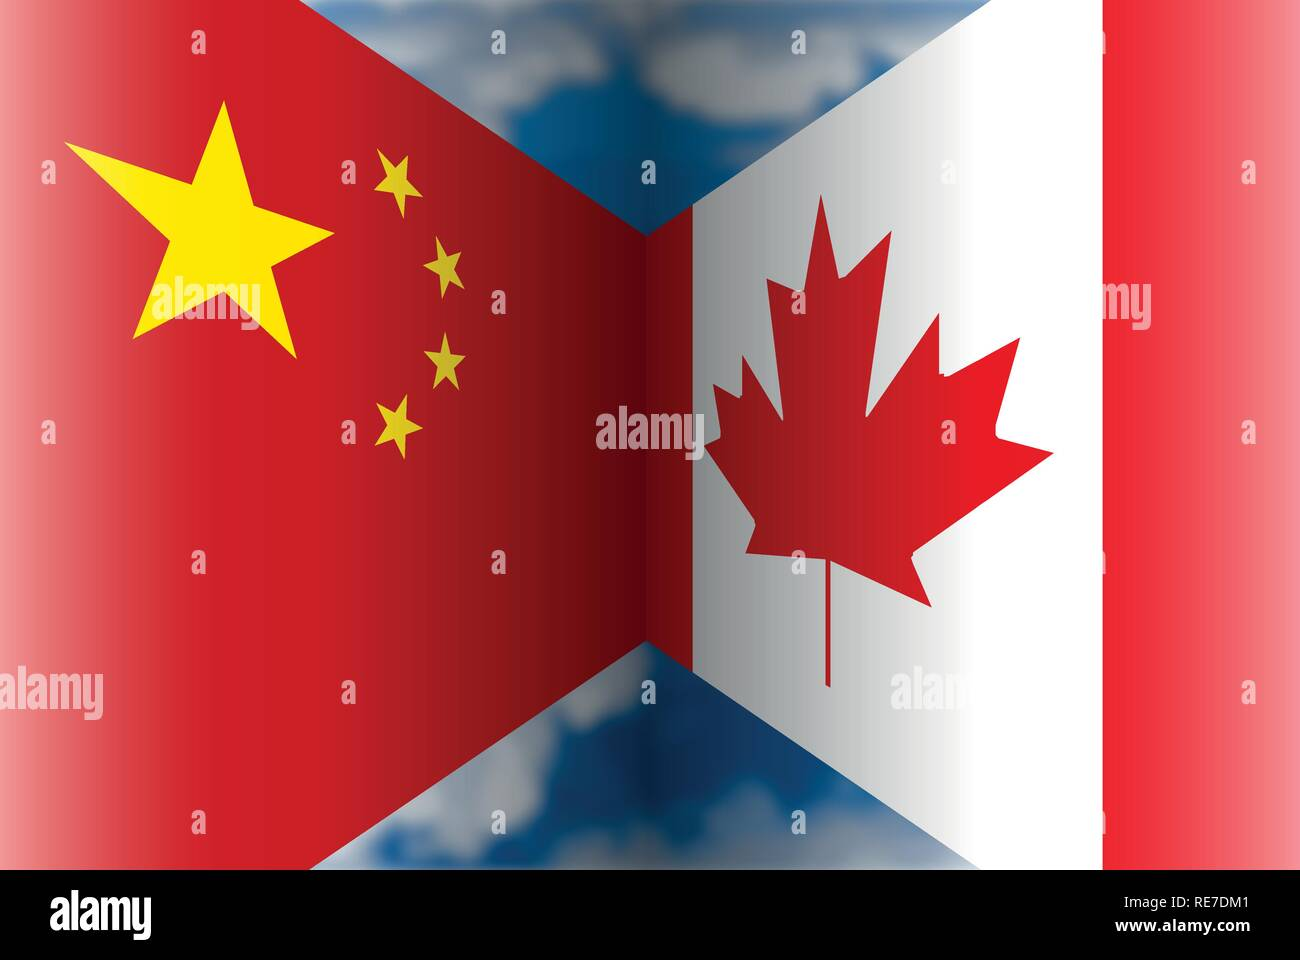 China vs Canada flags, vector illustration and graphic elaboration, international affairs - Stock Vector